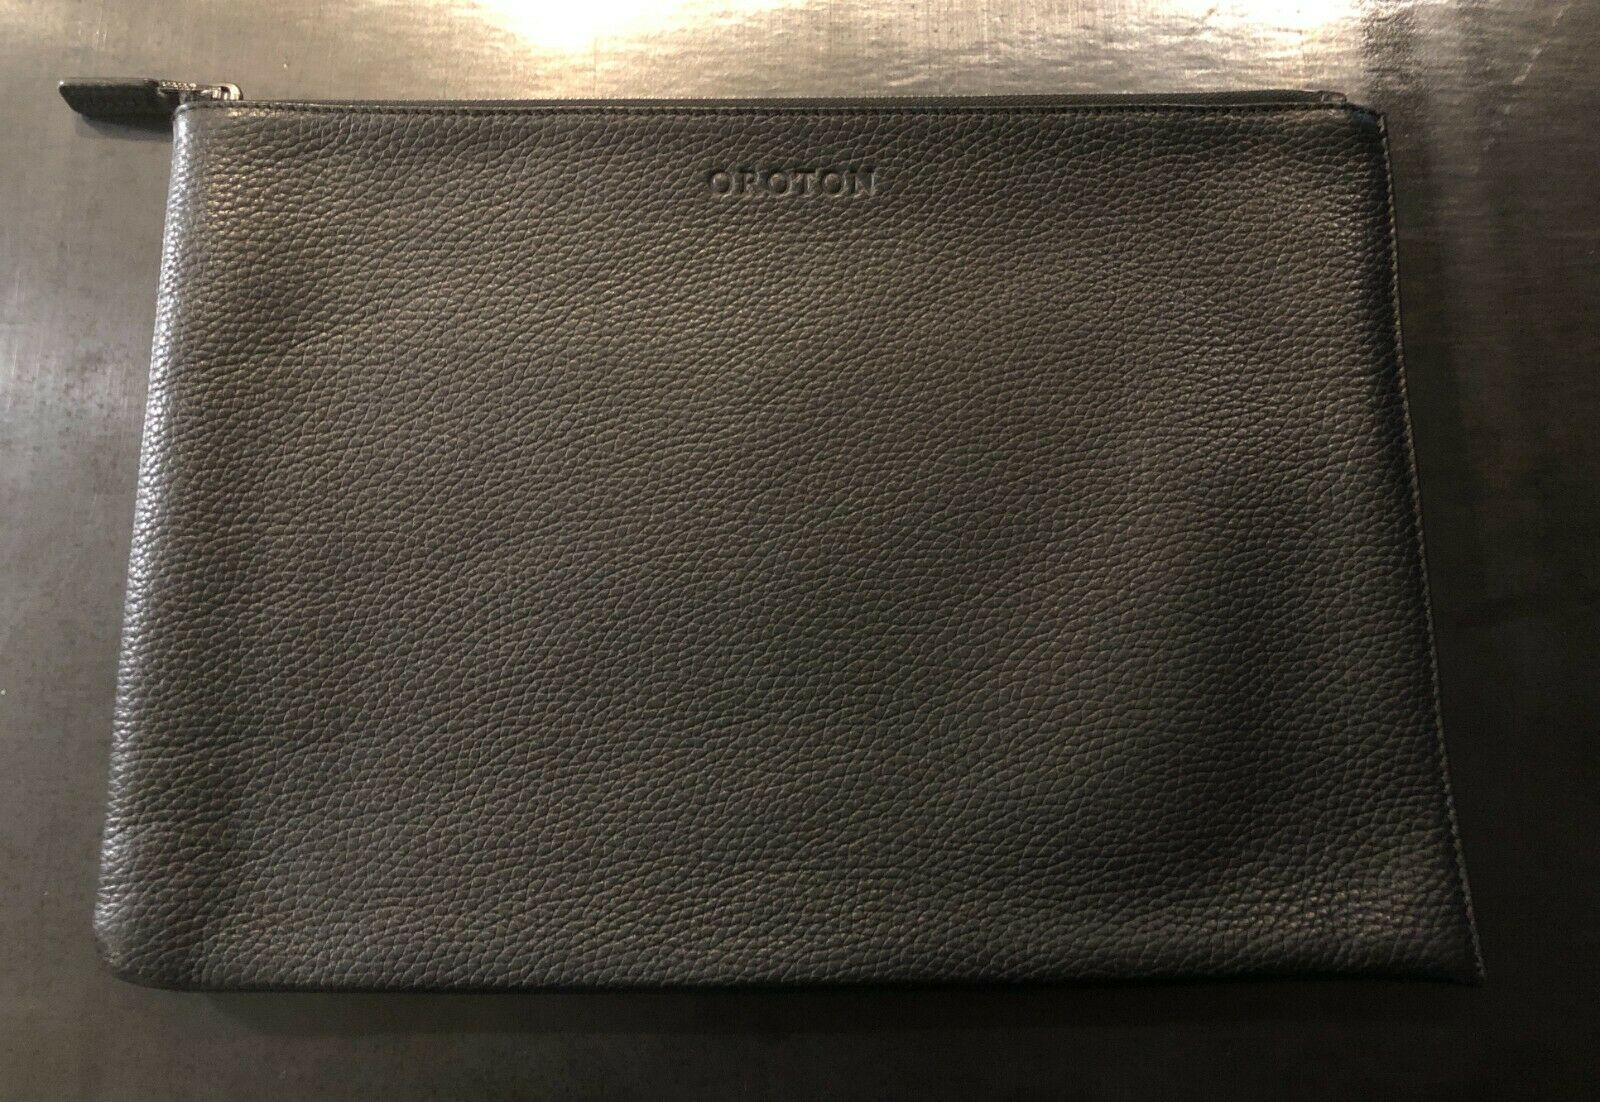 OROTON - Stanford A4 Zip Folio Sleeve - Premium Leather - Usually RRP is AU